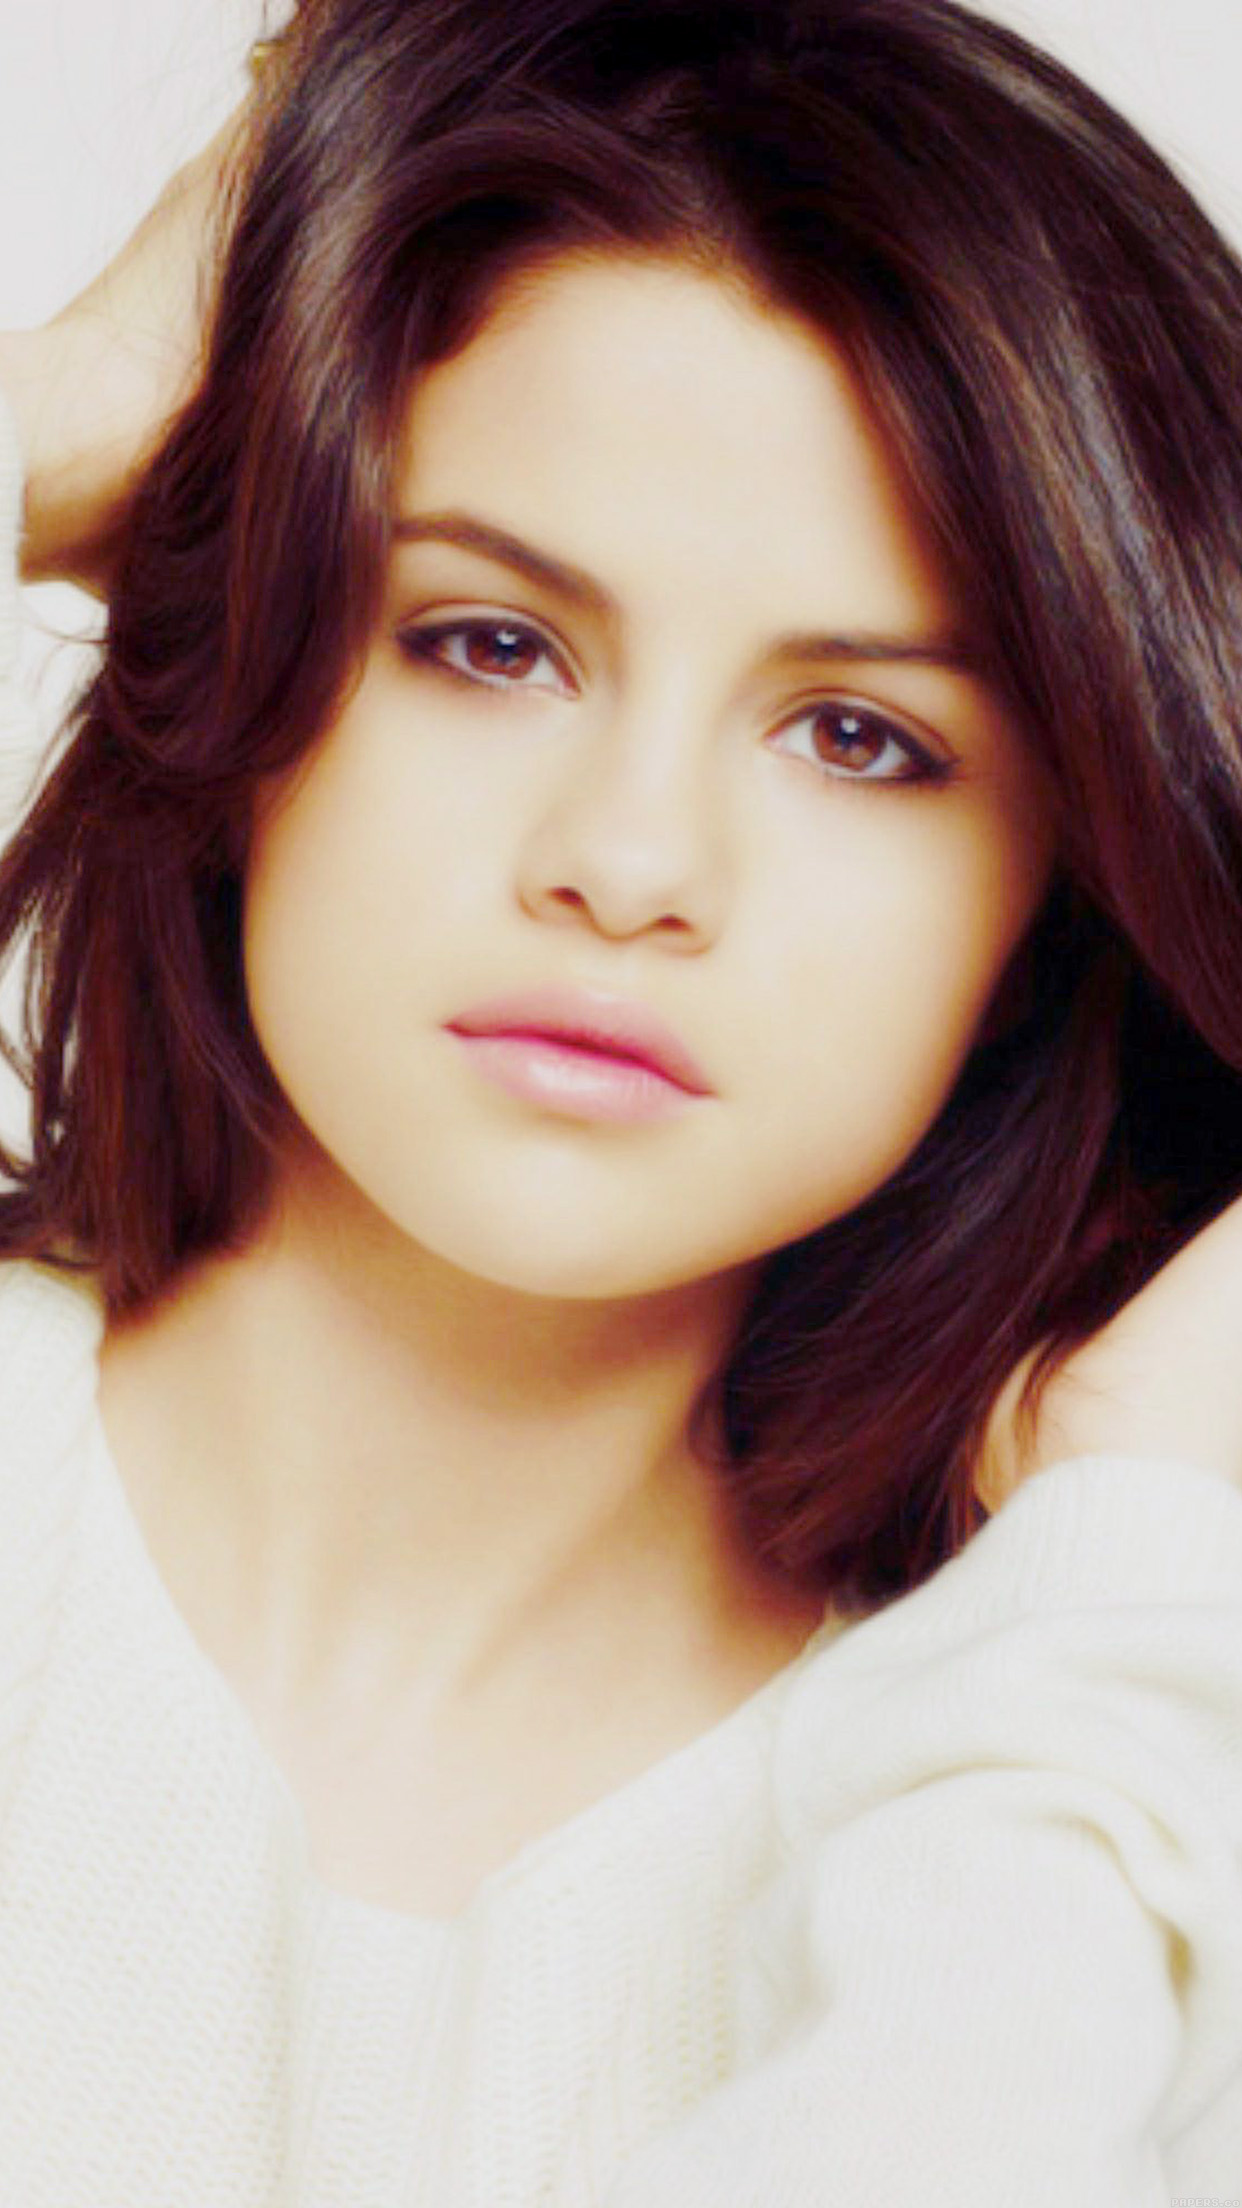 Selena Gomez Singer Artist Celebrity Android wallpaper